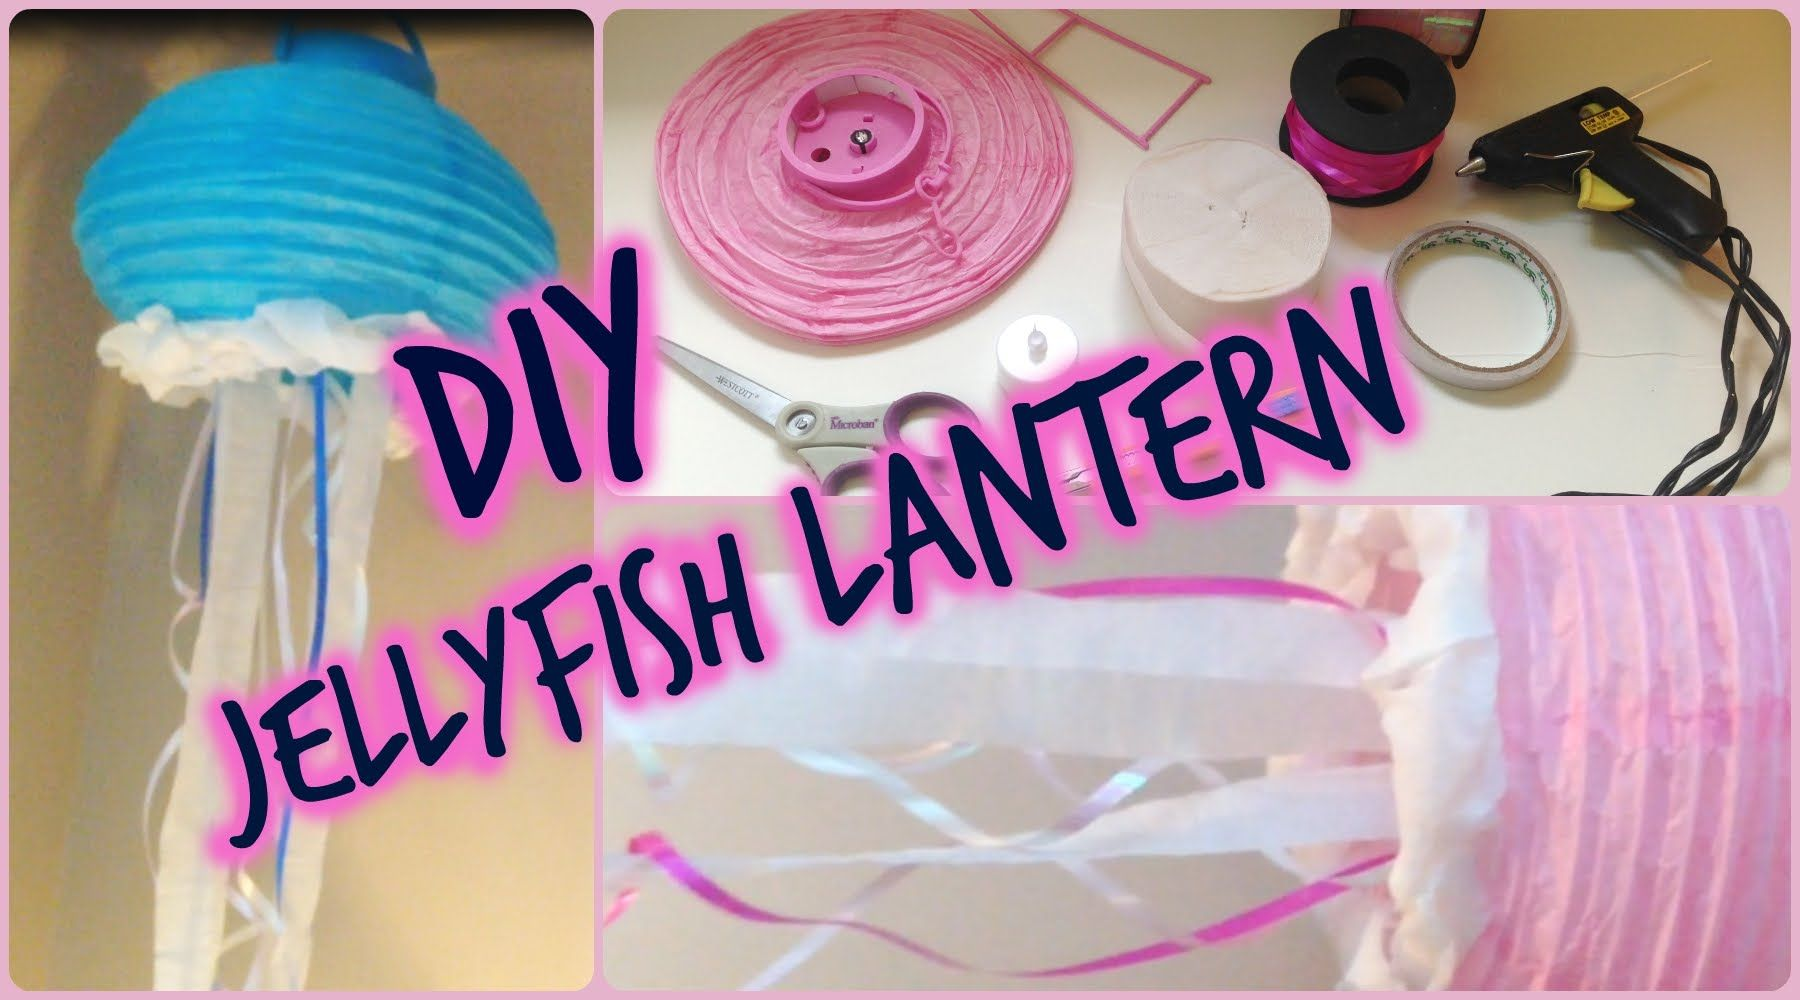 Paper Lantern Jellyfish Stunning Diy Jellyfish Lanterns  Noah's Shower  Pinterest  Jellyfish And Inspiration Design